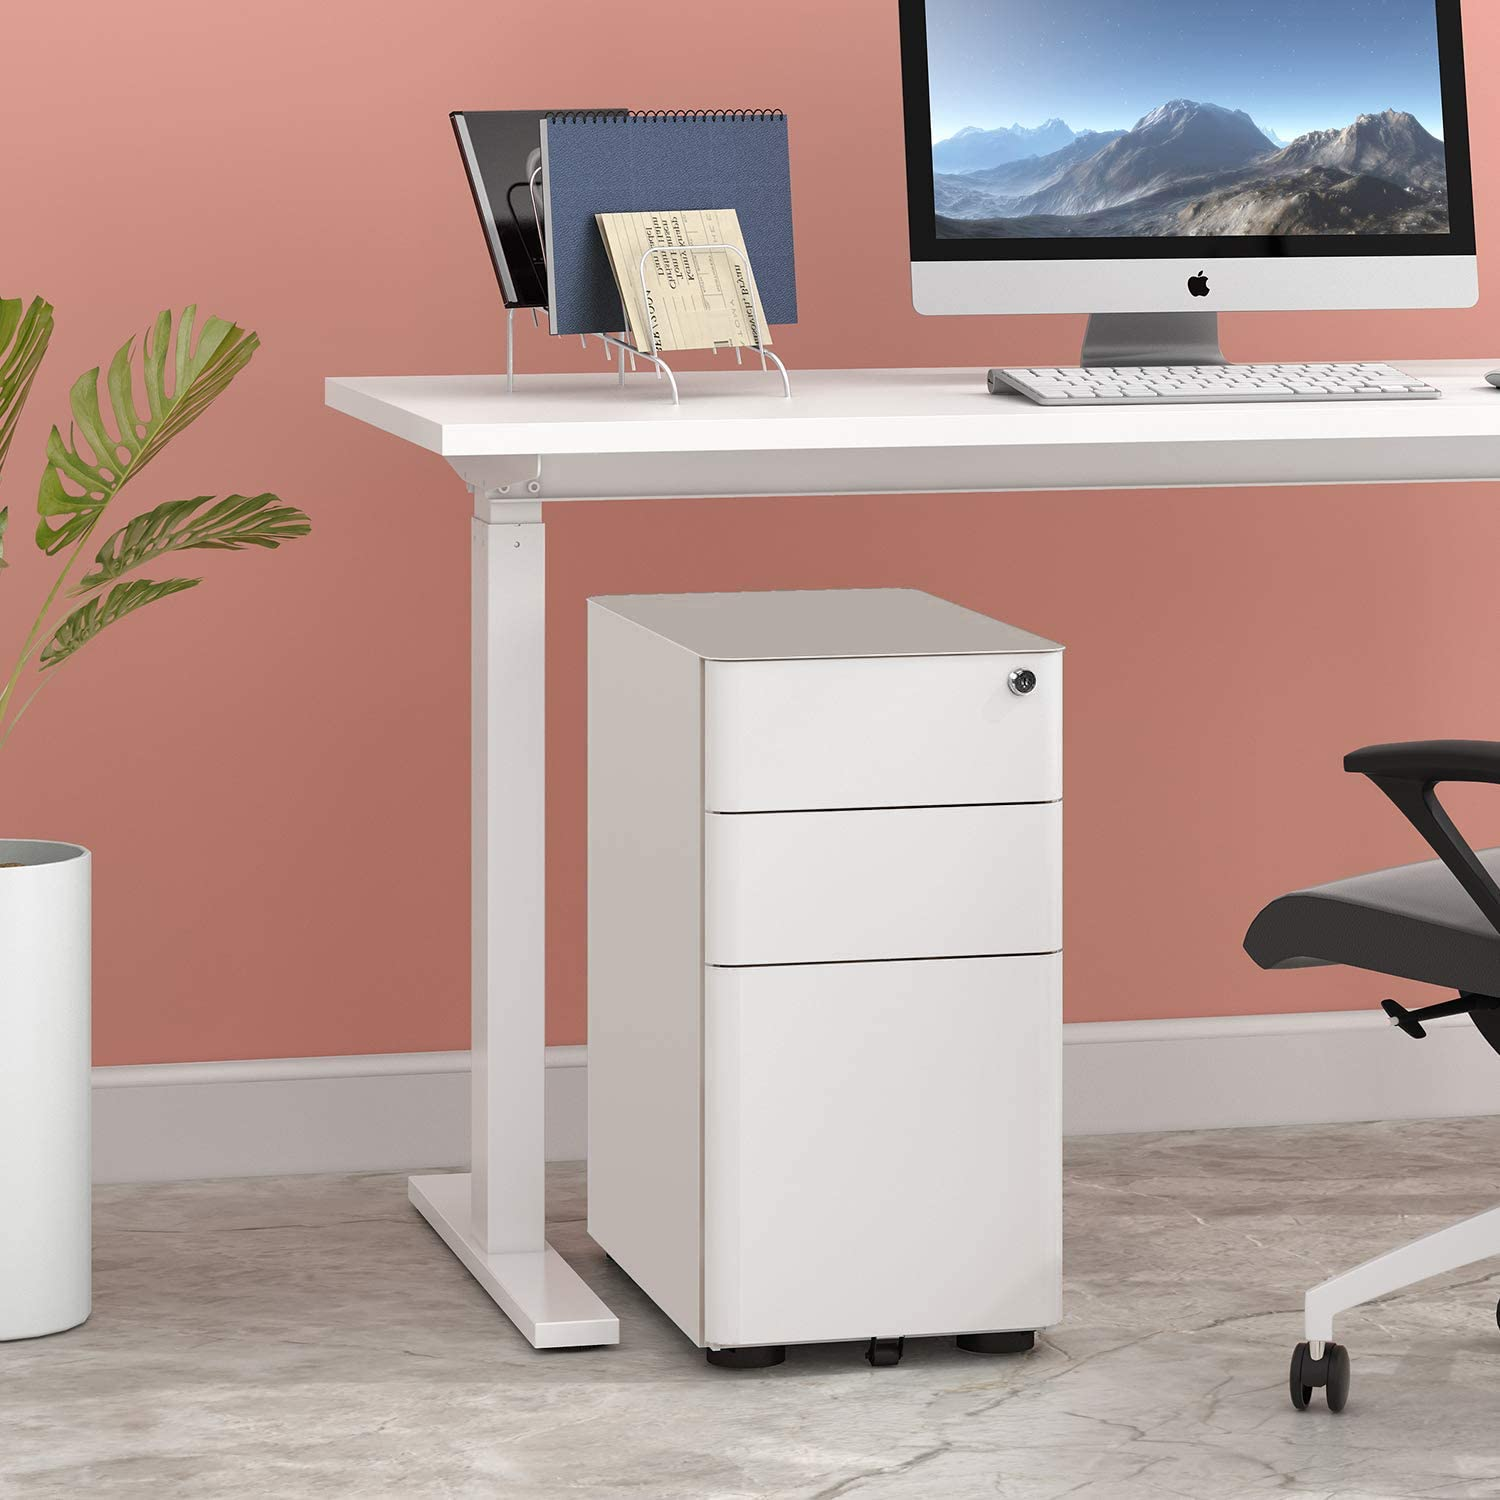 DEVAISE 3-Drawer Slim Vertical File Cabinet, Fully Assembled Except Casters, Legal/Letter Size, White : Office Products